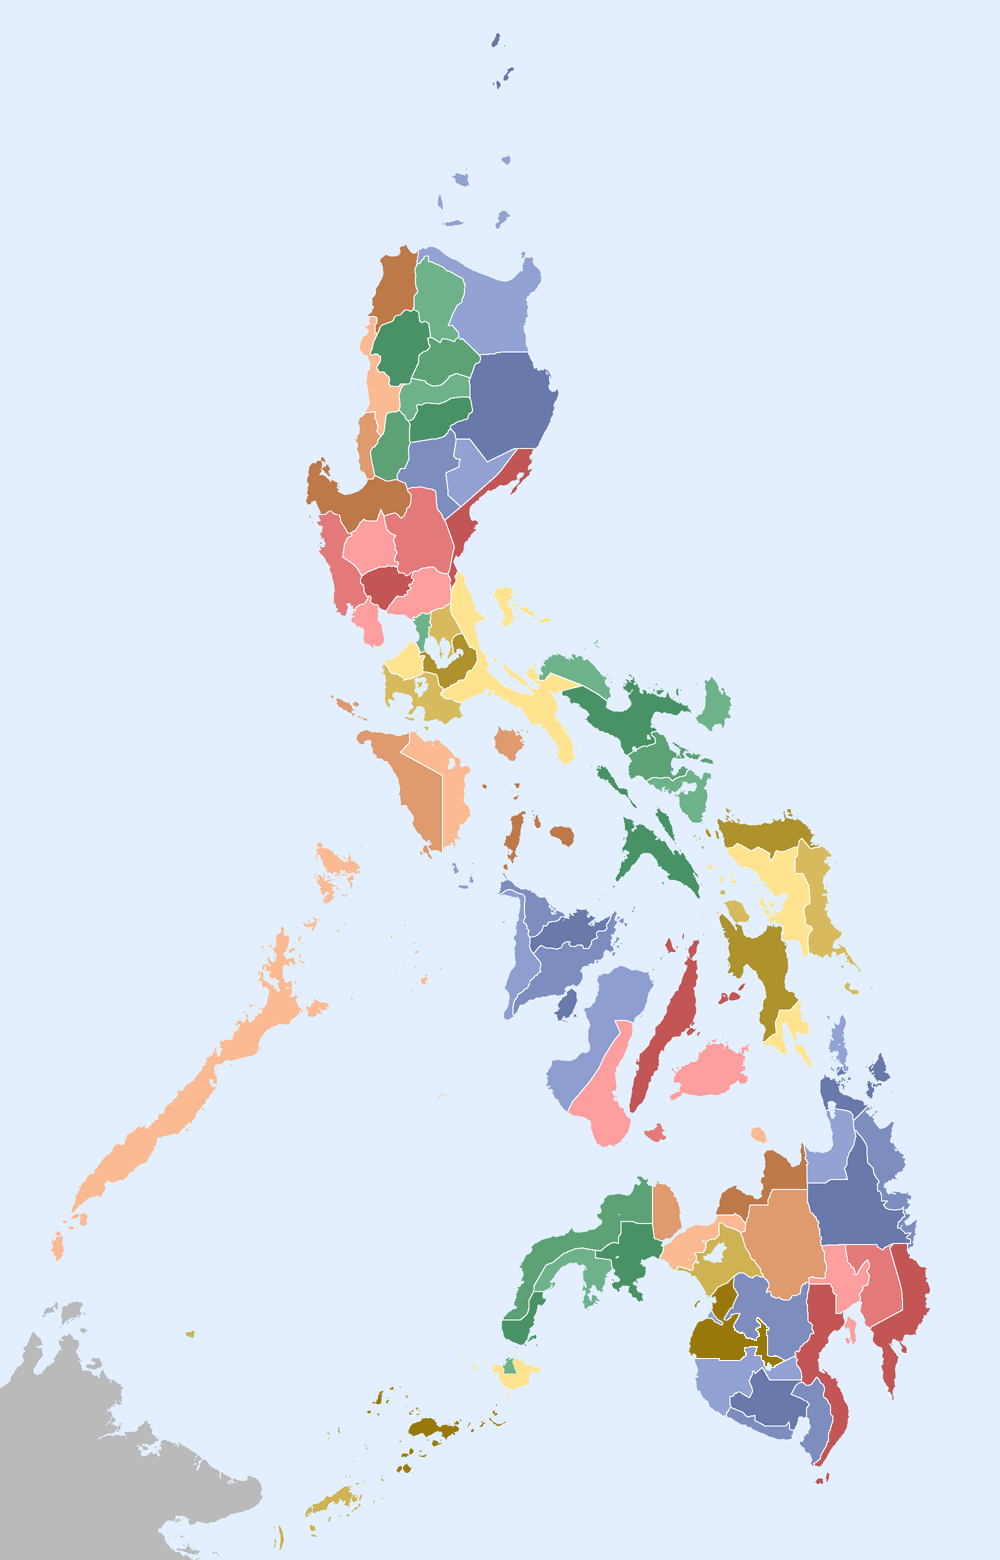 Philippines Regions And Provinces • Mapsof.net